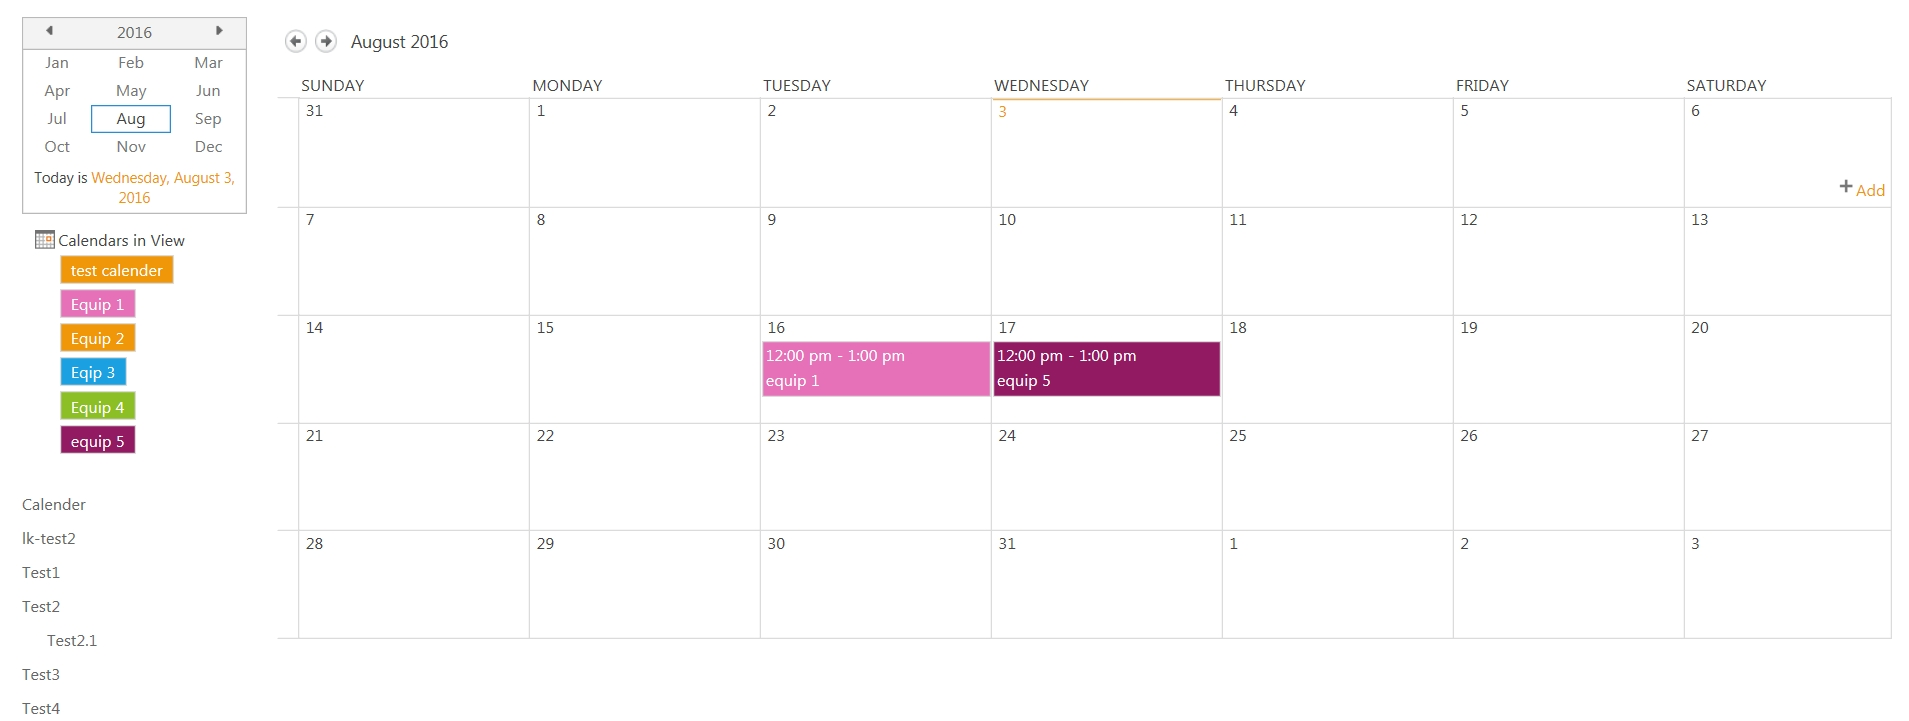 2013 - Calendar Color-Coding - Sharepoint Stack Exchange pertaining to Sharepoint 2013 Calendar Overlay Issues